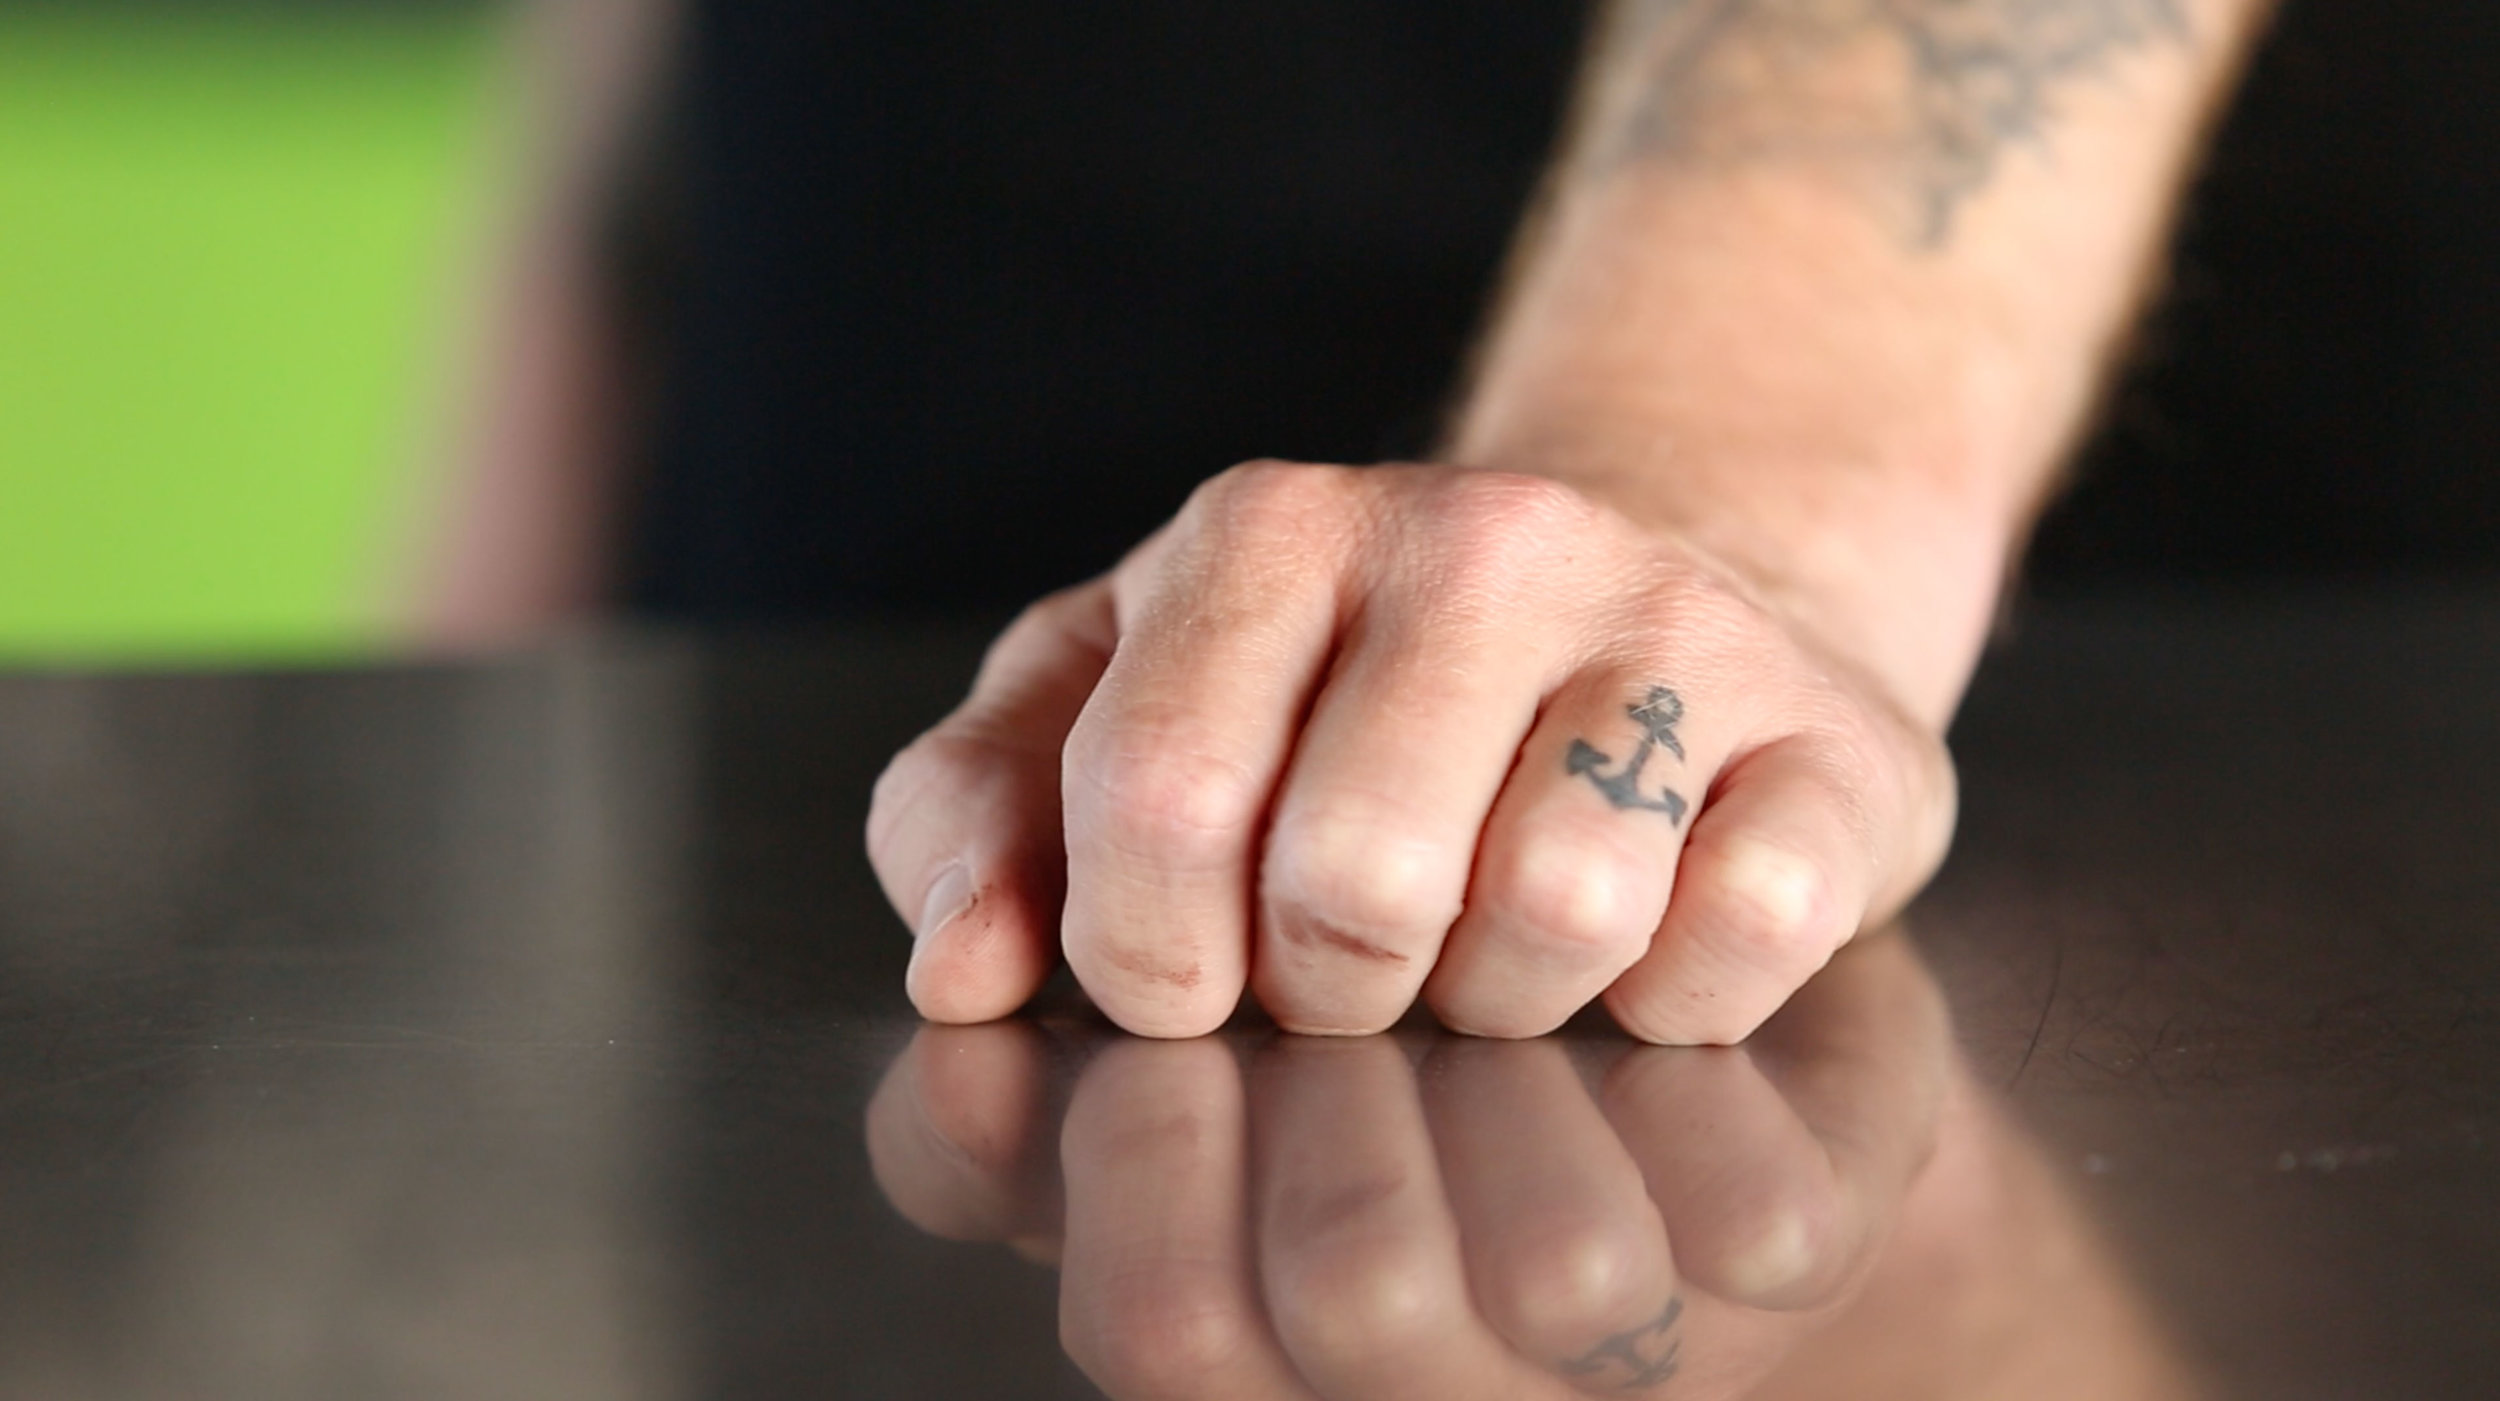 CU-Wine-Hands-Tatooed.jpg